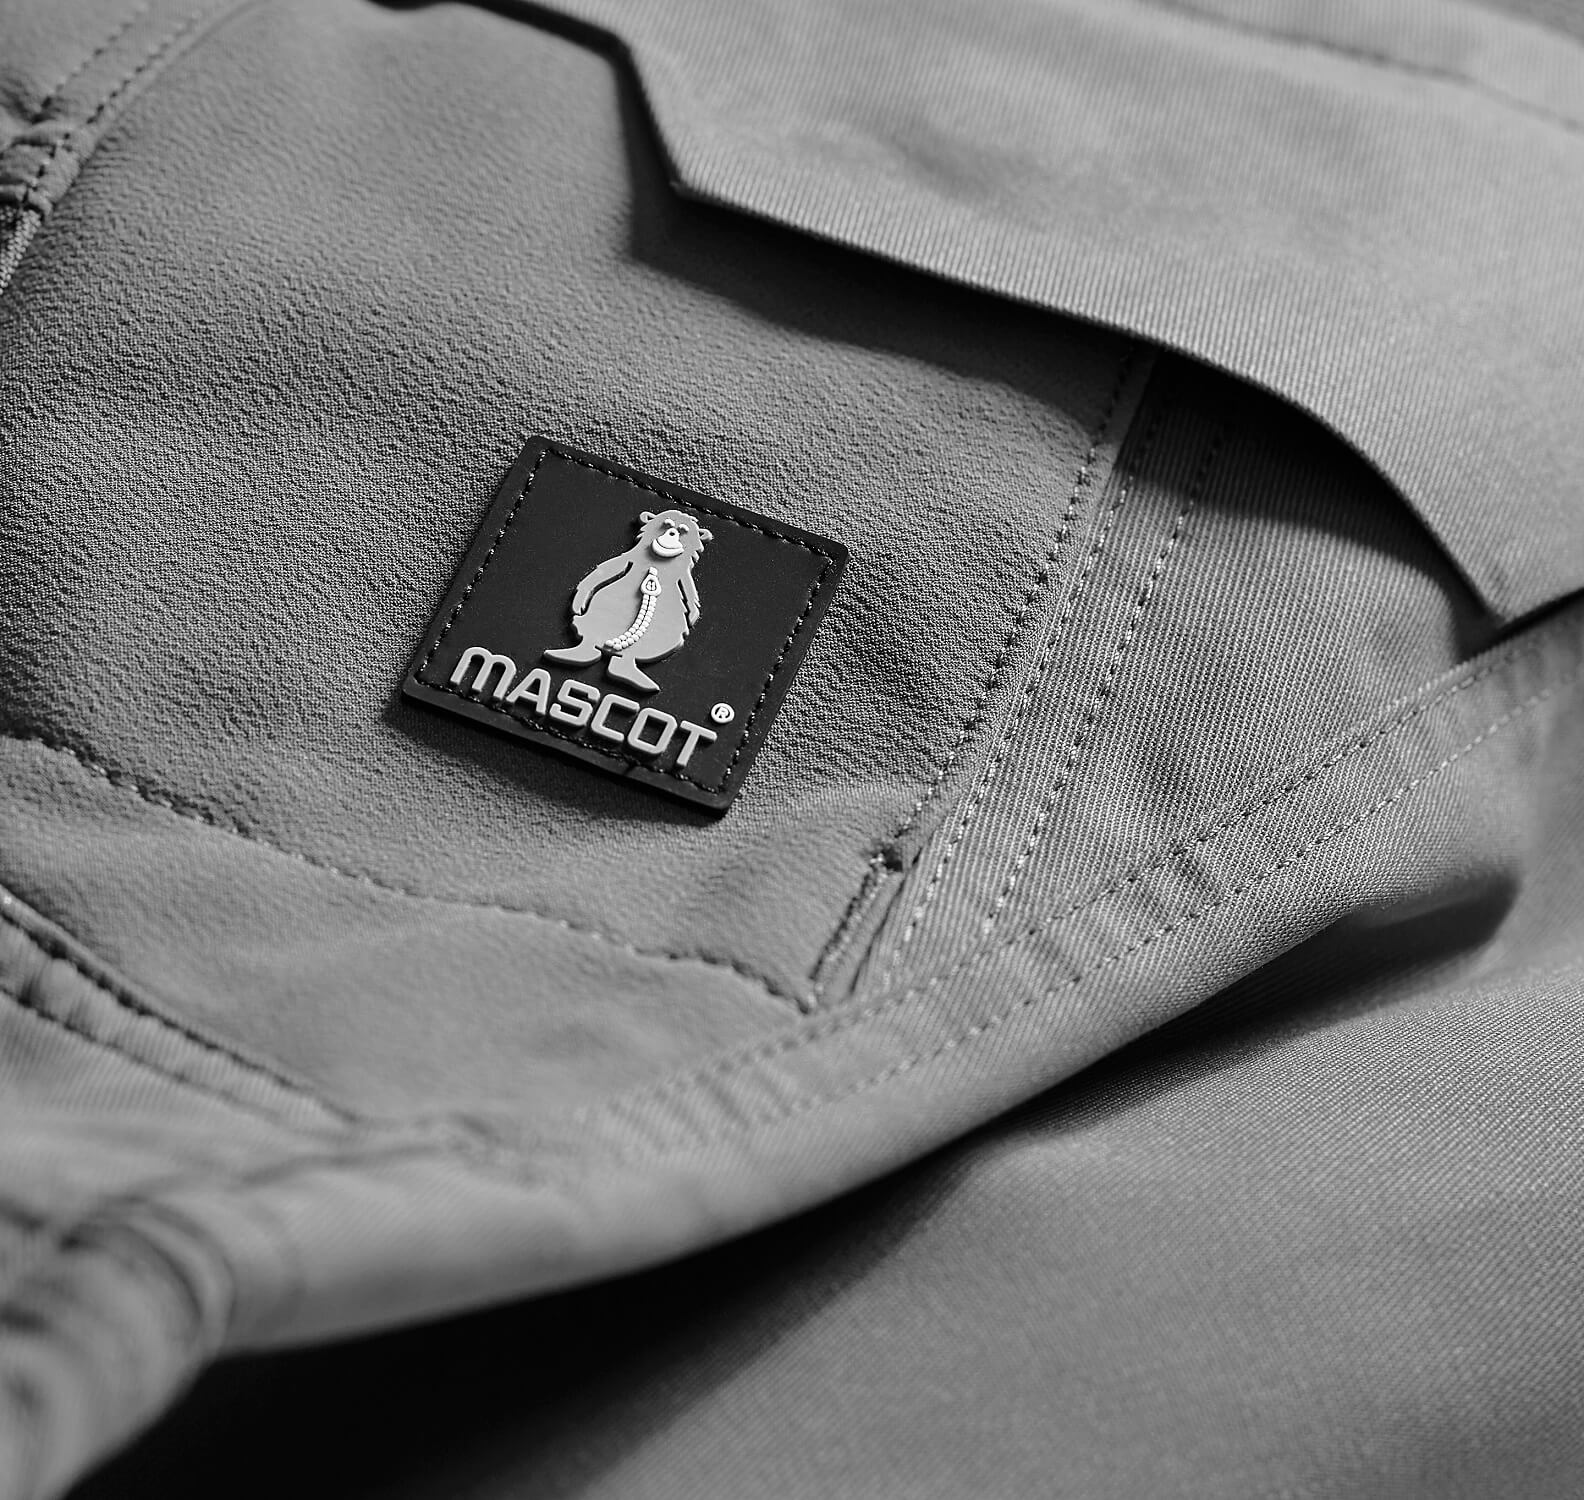 Trousers Grey - Detail - MASCOT® ACCELERATE